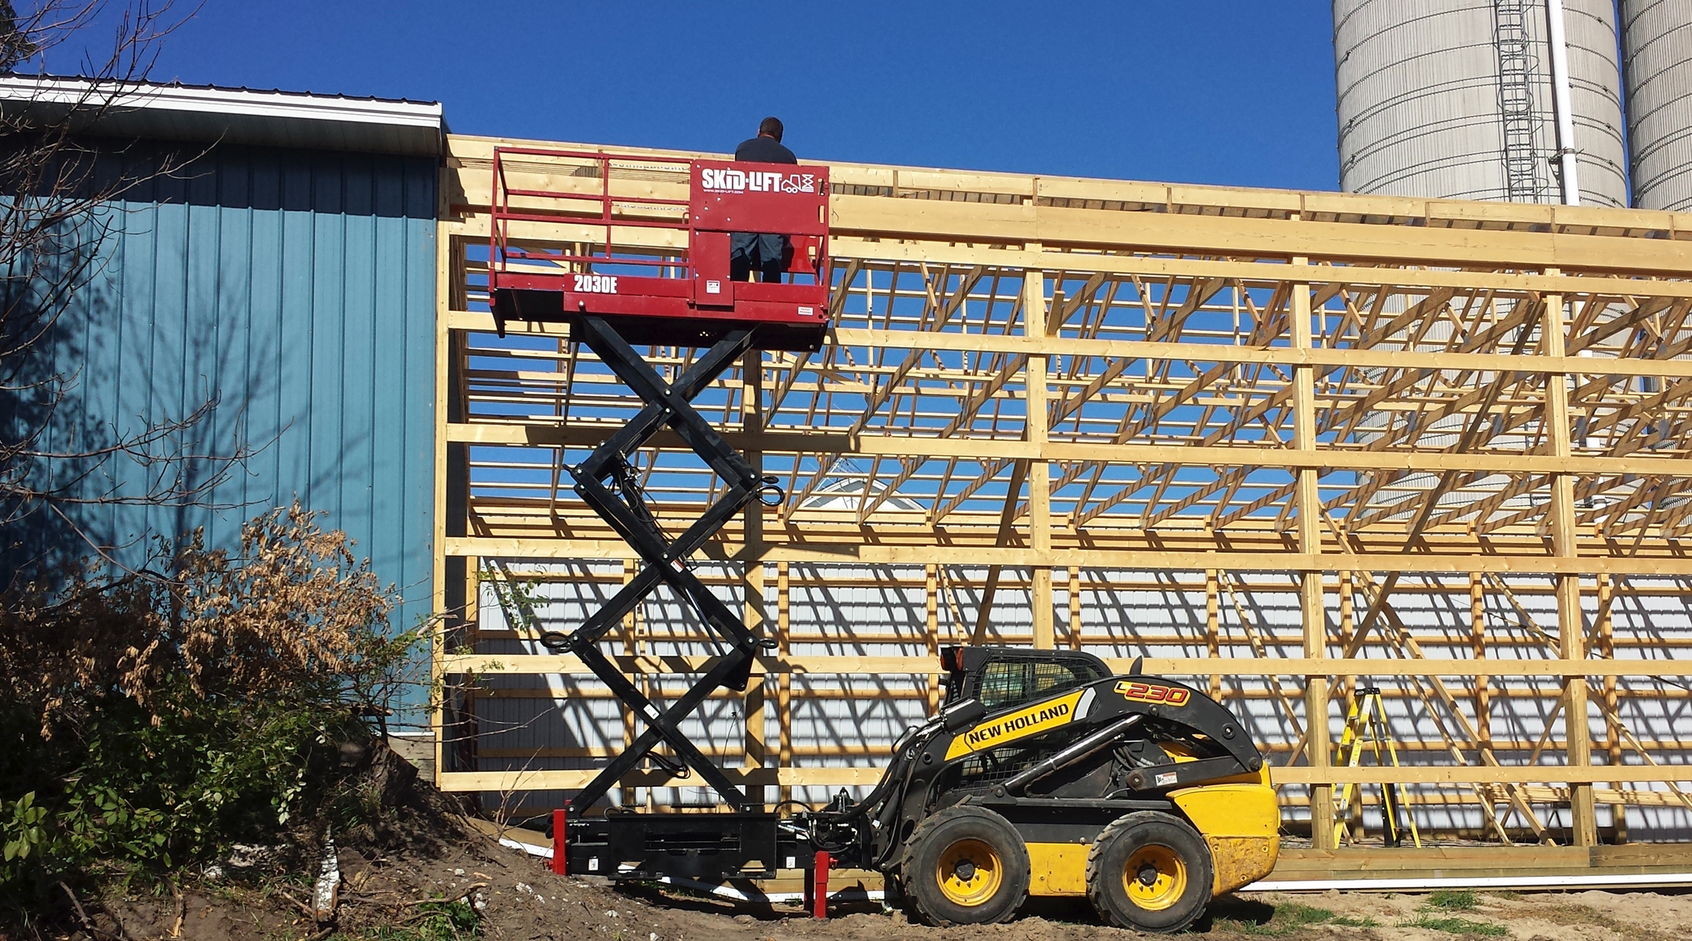 Skid-Lift announced the production of its scissor lift skid steer attachment for construction, maintenance and agricultural industries.